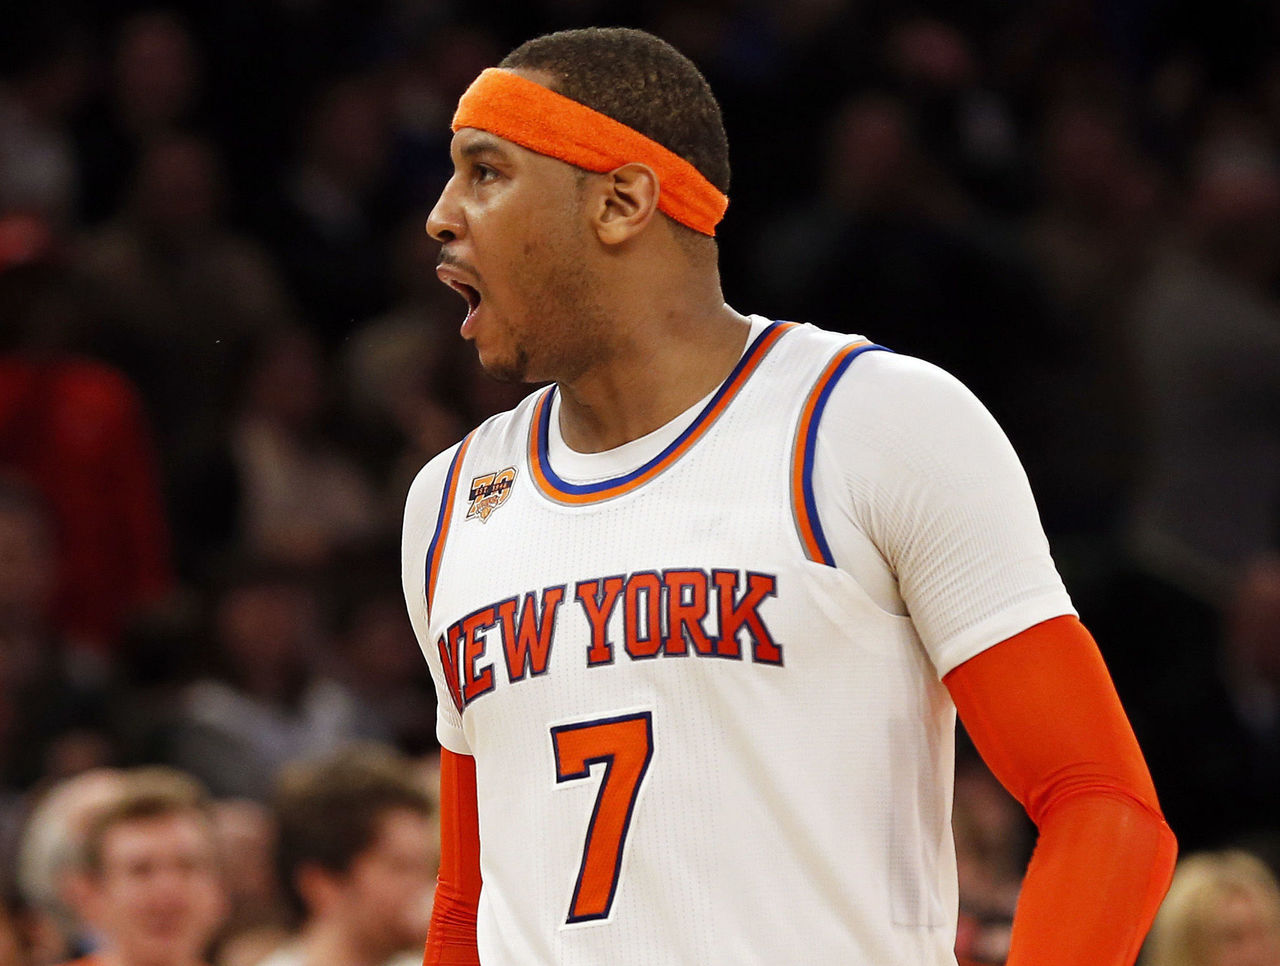 Cropped_2017-02-12t233544z_876531026_nocid_rtrmadp_3_nba-san-antonio-spurs-at-new-york-knicks